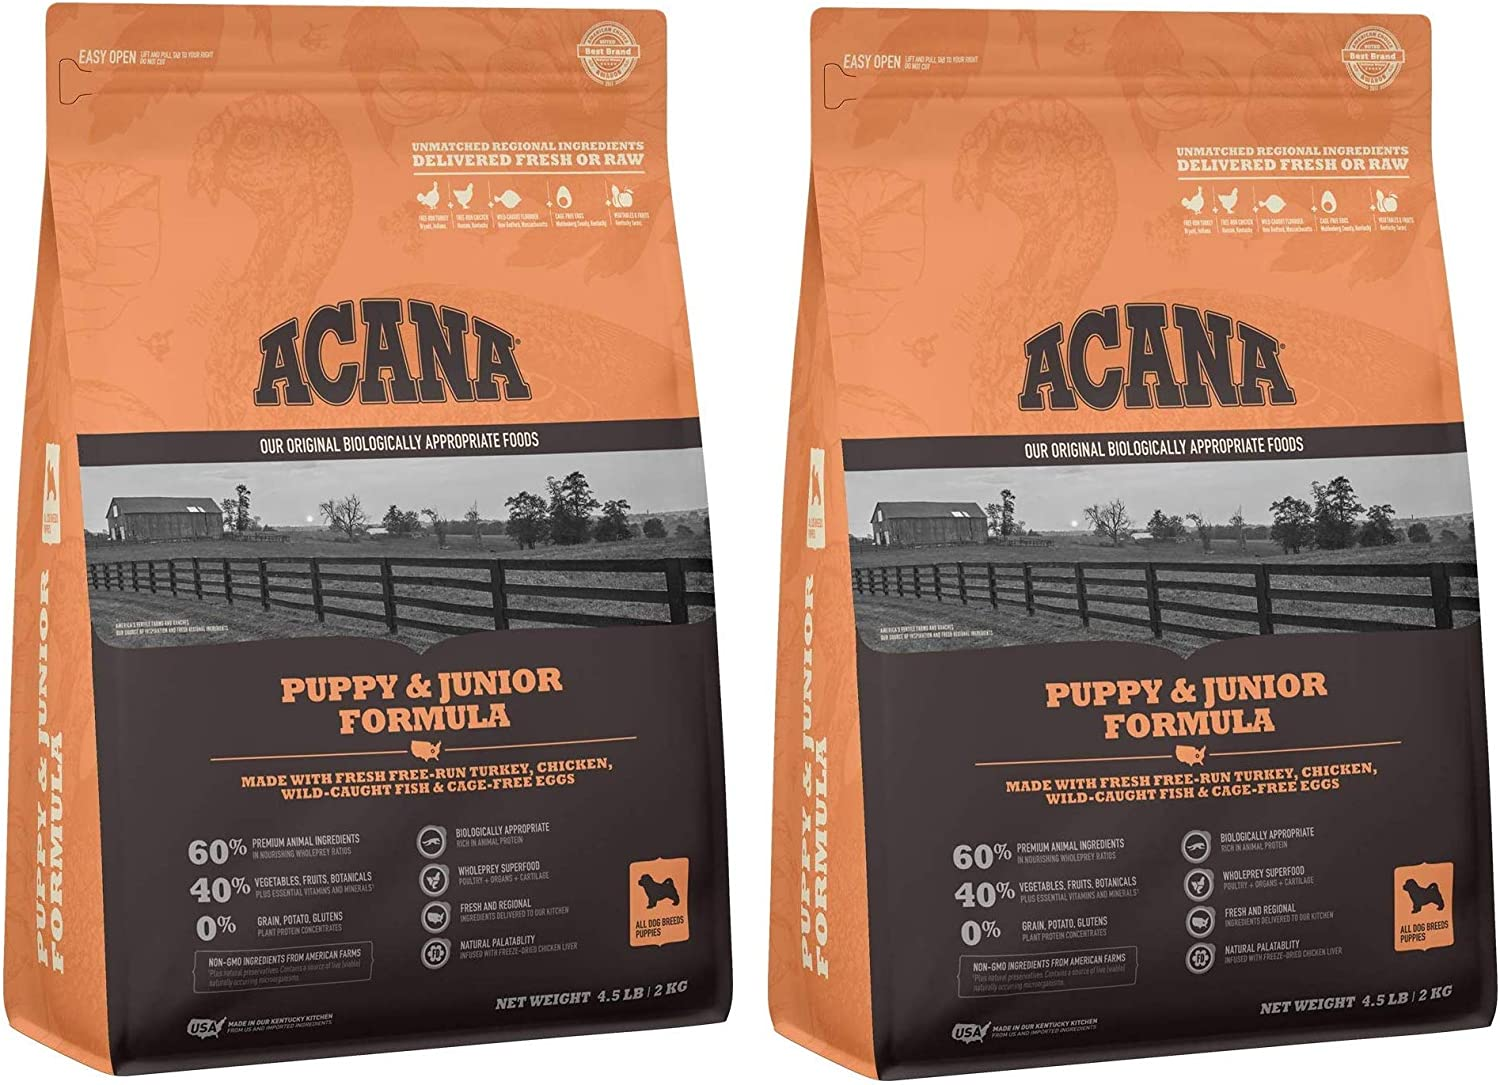 ACANA 2 Bags of Puppy & Junior Dry Dog Food, 4.5 Pounds Each, Grain-Free, Made in The USA